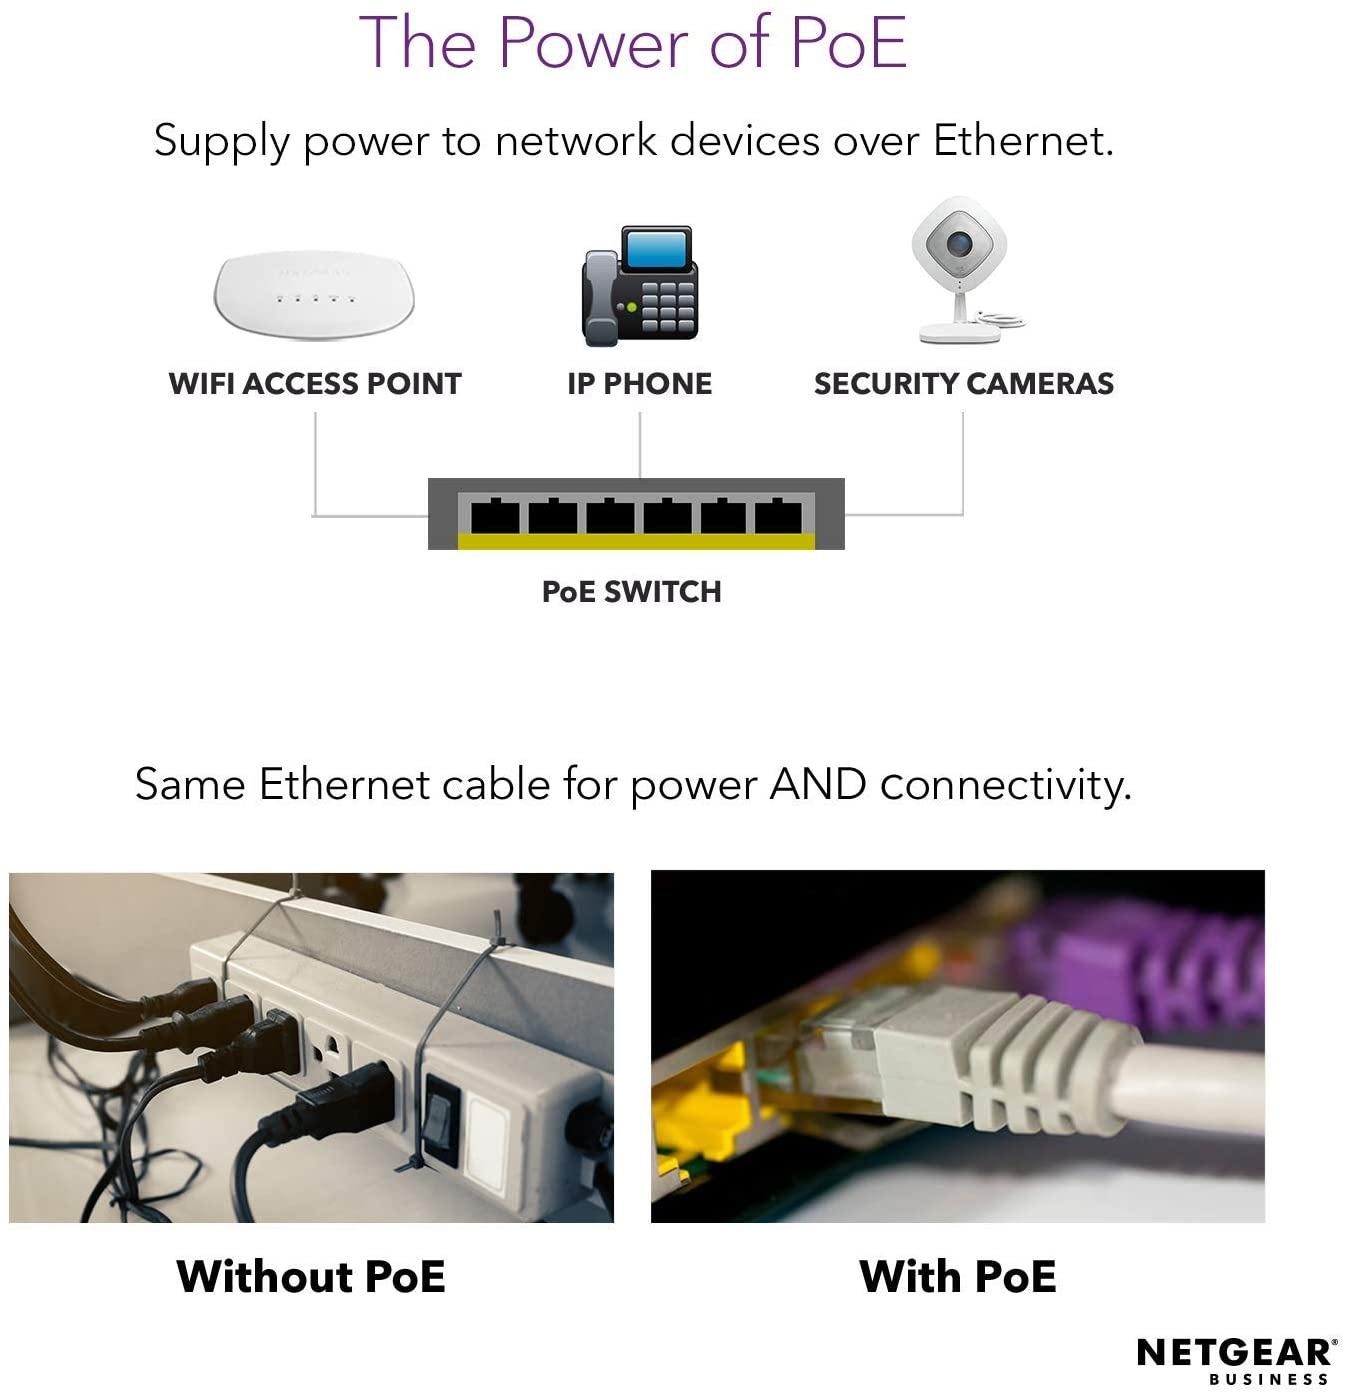 NETGEAR 5 PORT GIGABIT ETHERNET UNMANAGED POE+ SWITCH (83W)